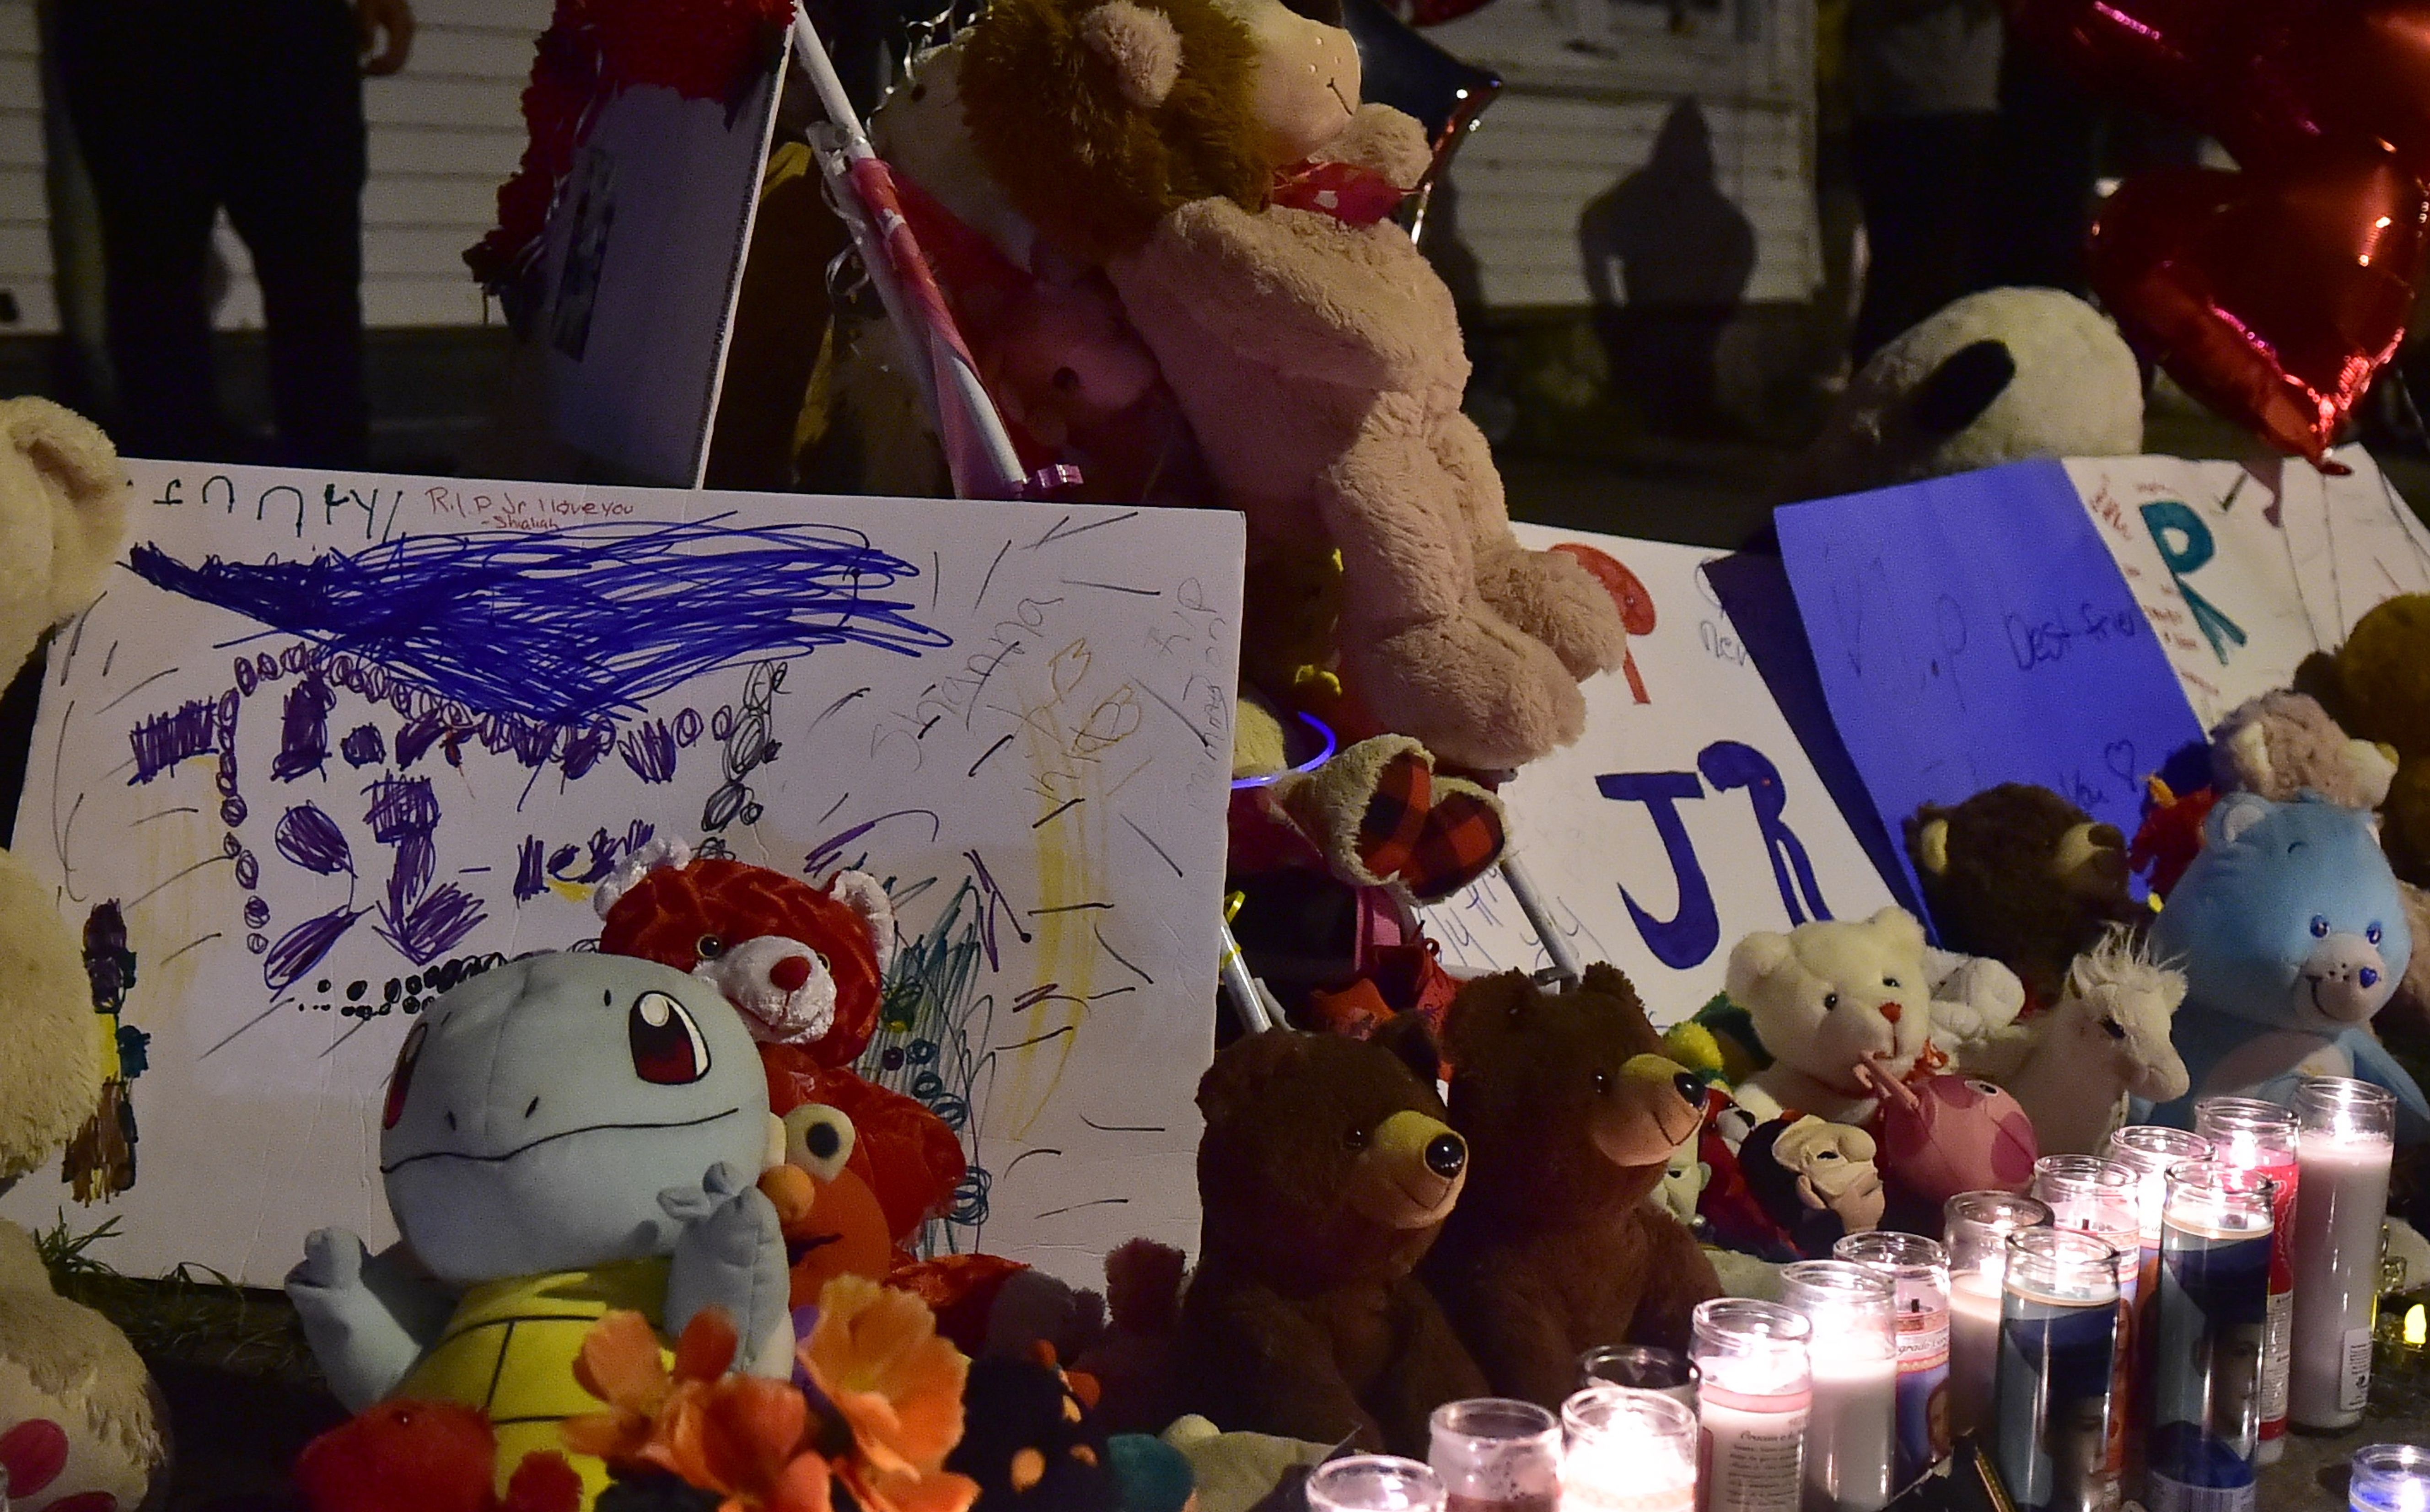 After screaming bloody murder, man admits role in 12-year-old's death